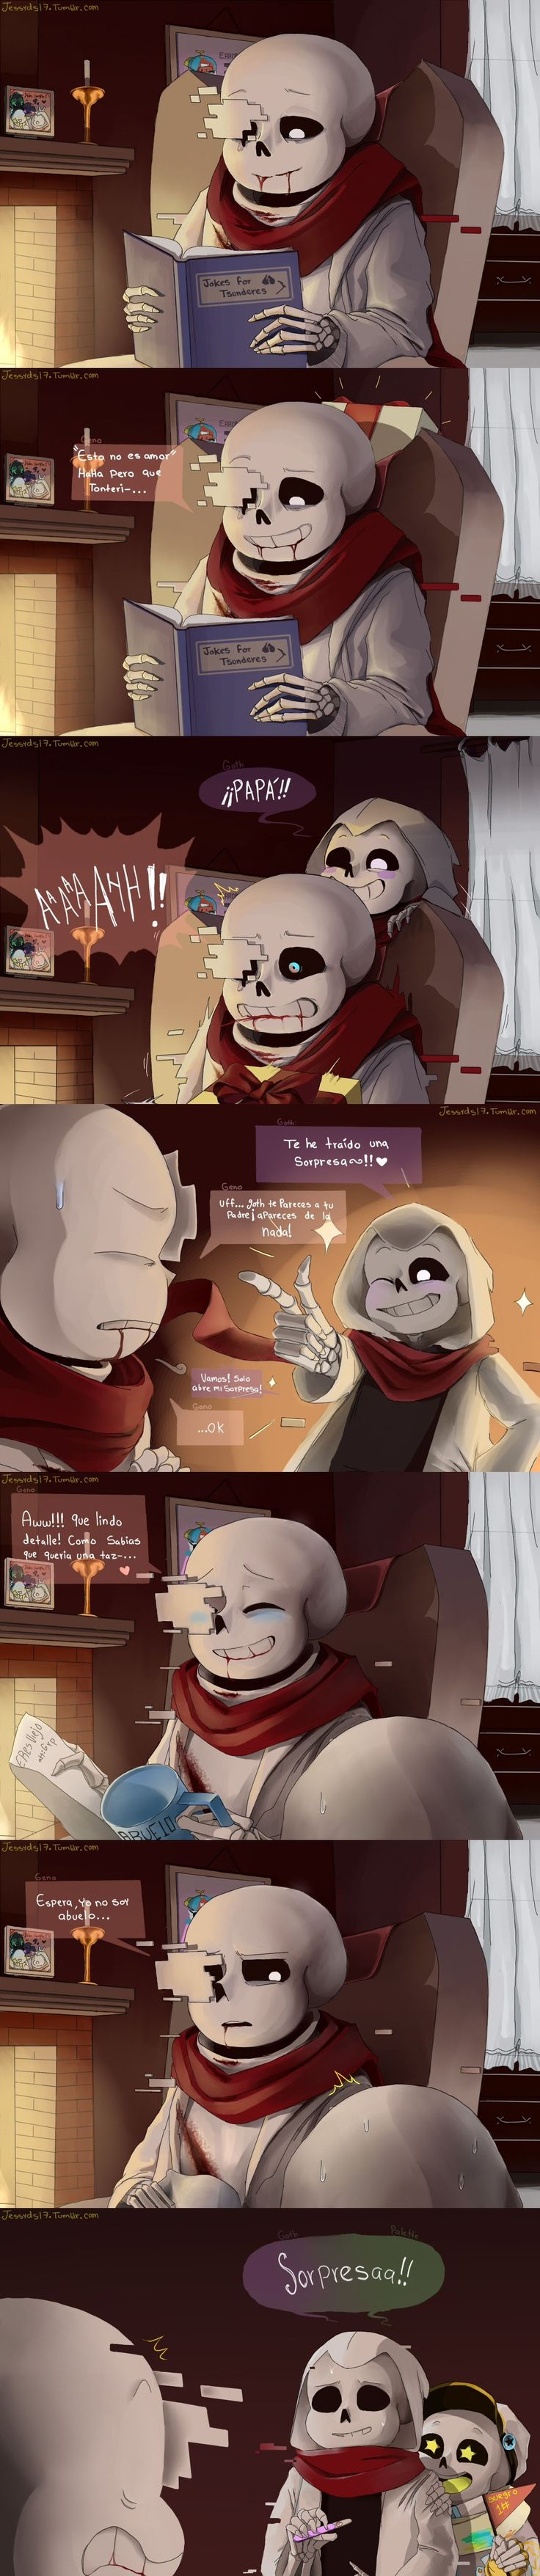 I was a bit confused bc it's not English but I still found the last panel funny.. I kinda get it? :P